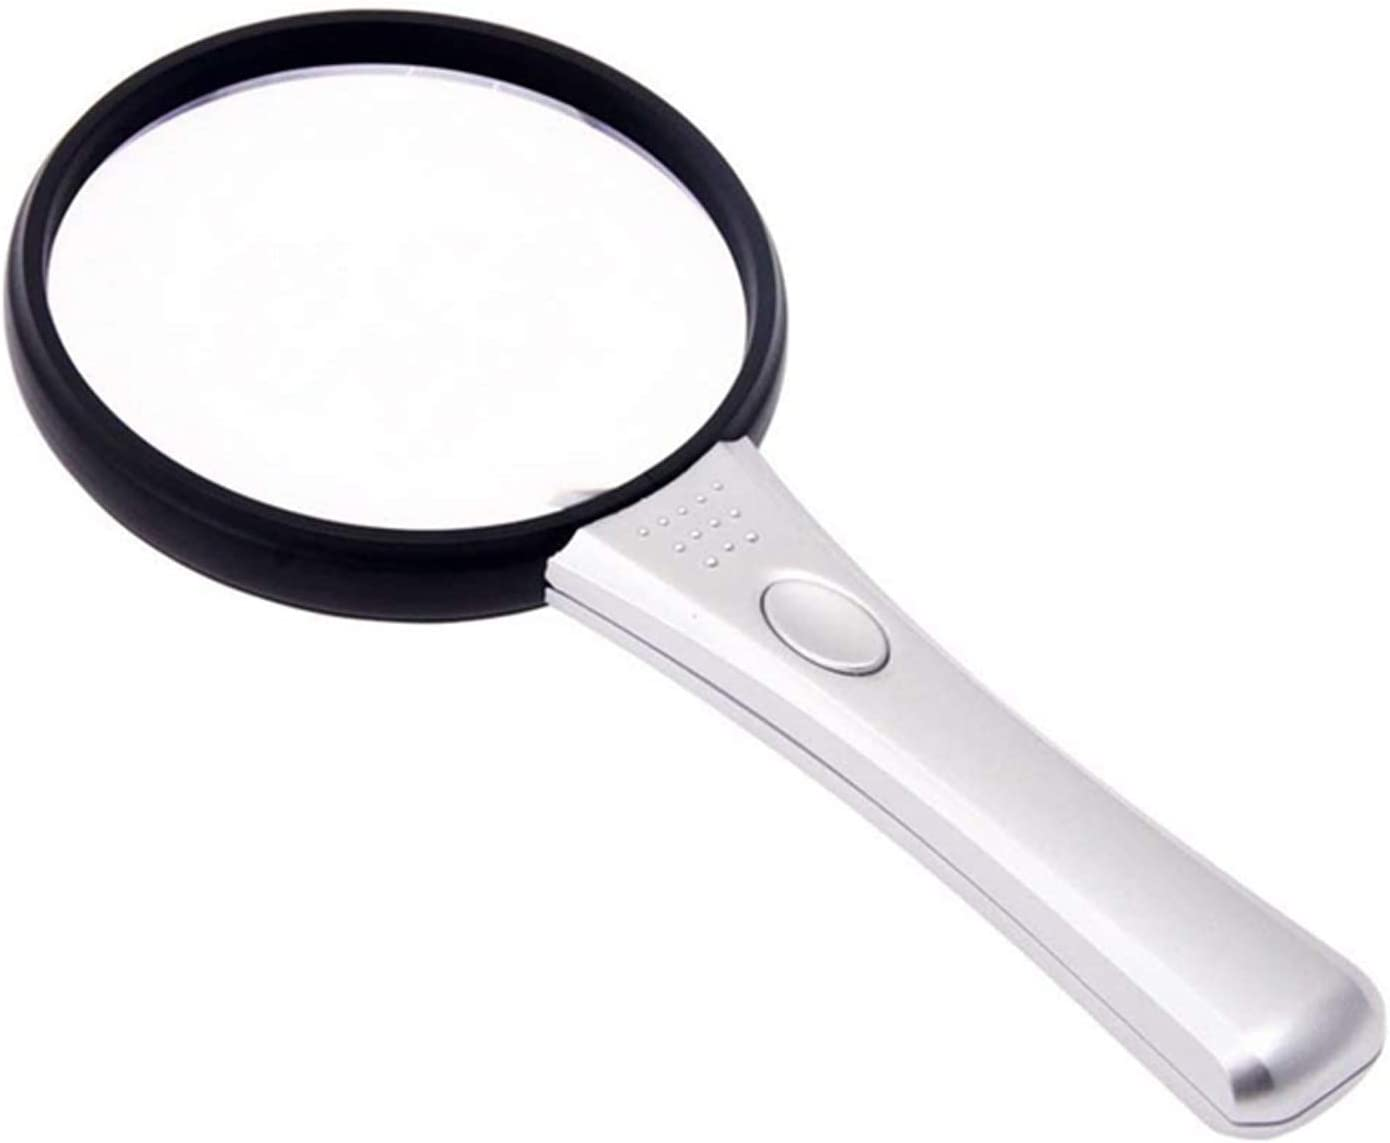 CMMWA Shipping included Challenge the lowest price of Japan ☆ Portable Reading Magnifier High-Definition 3 Tim 6 Optical